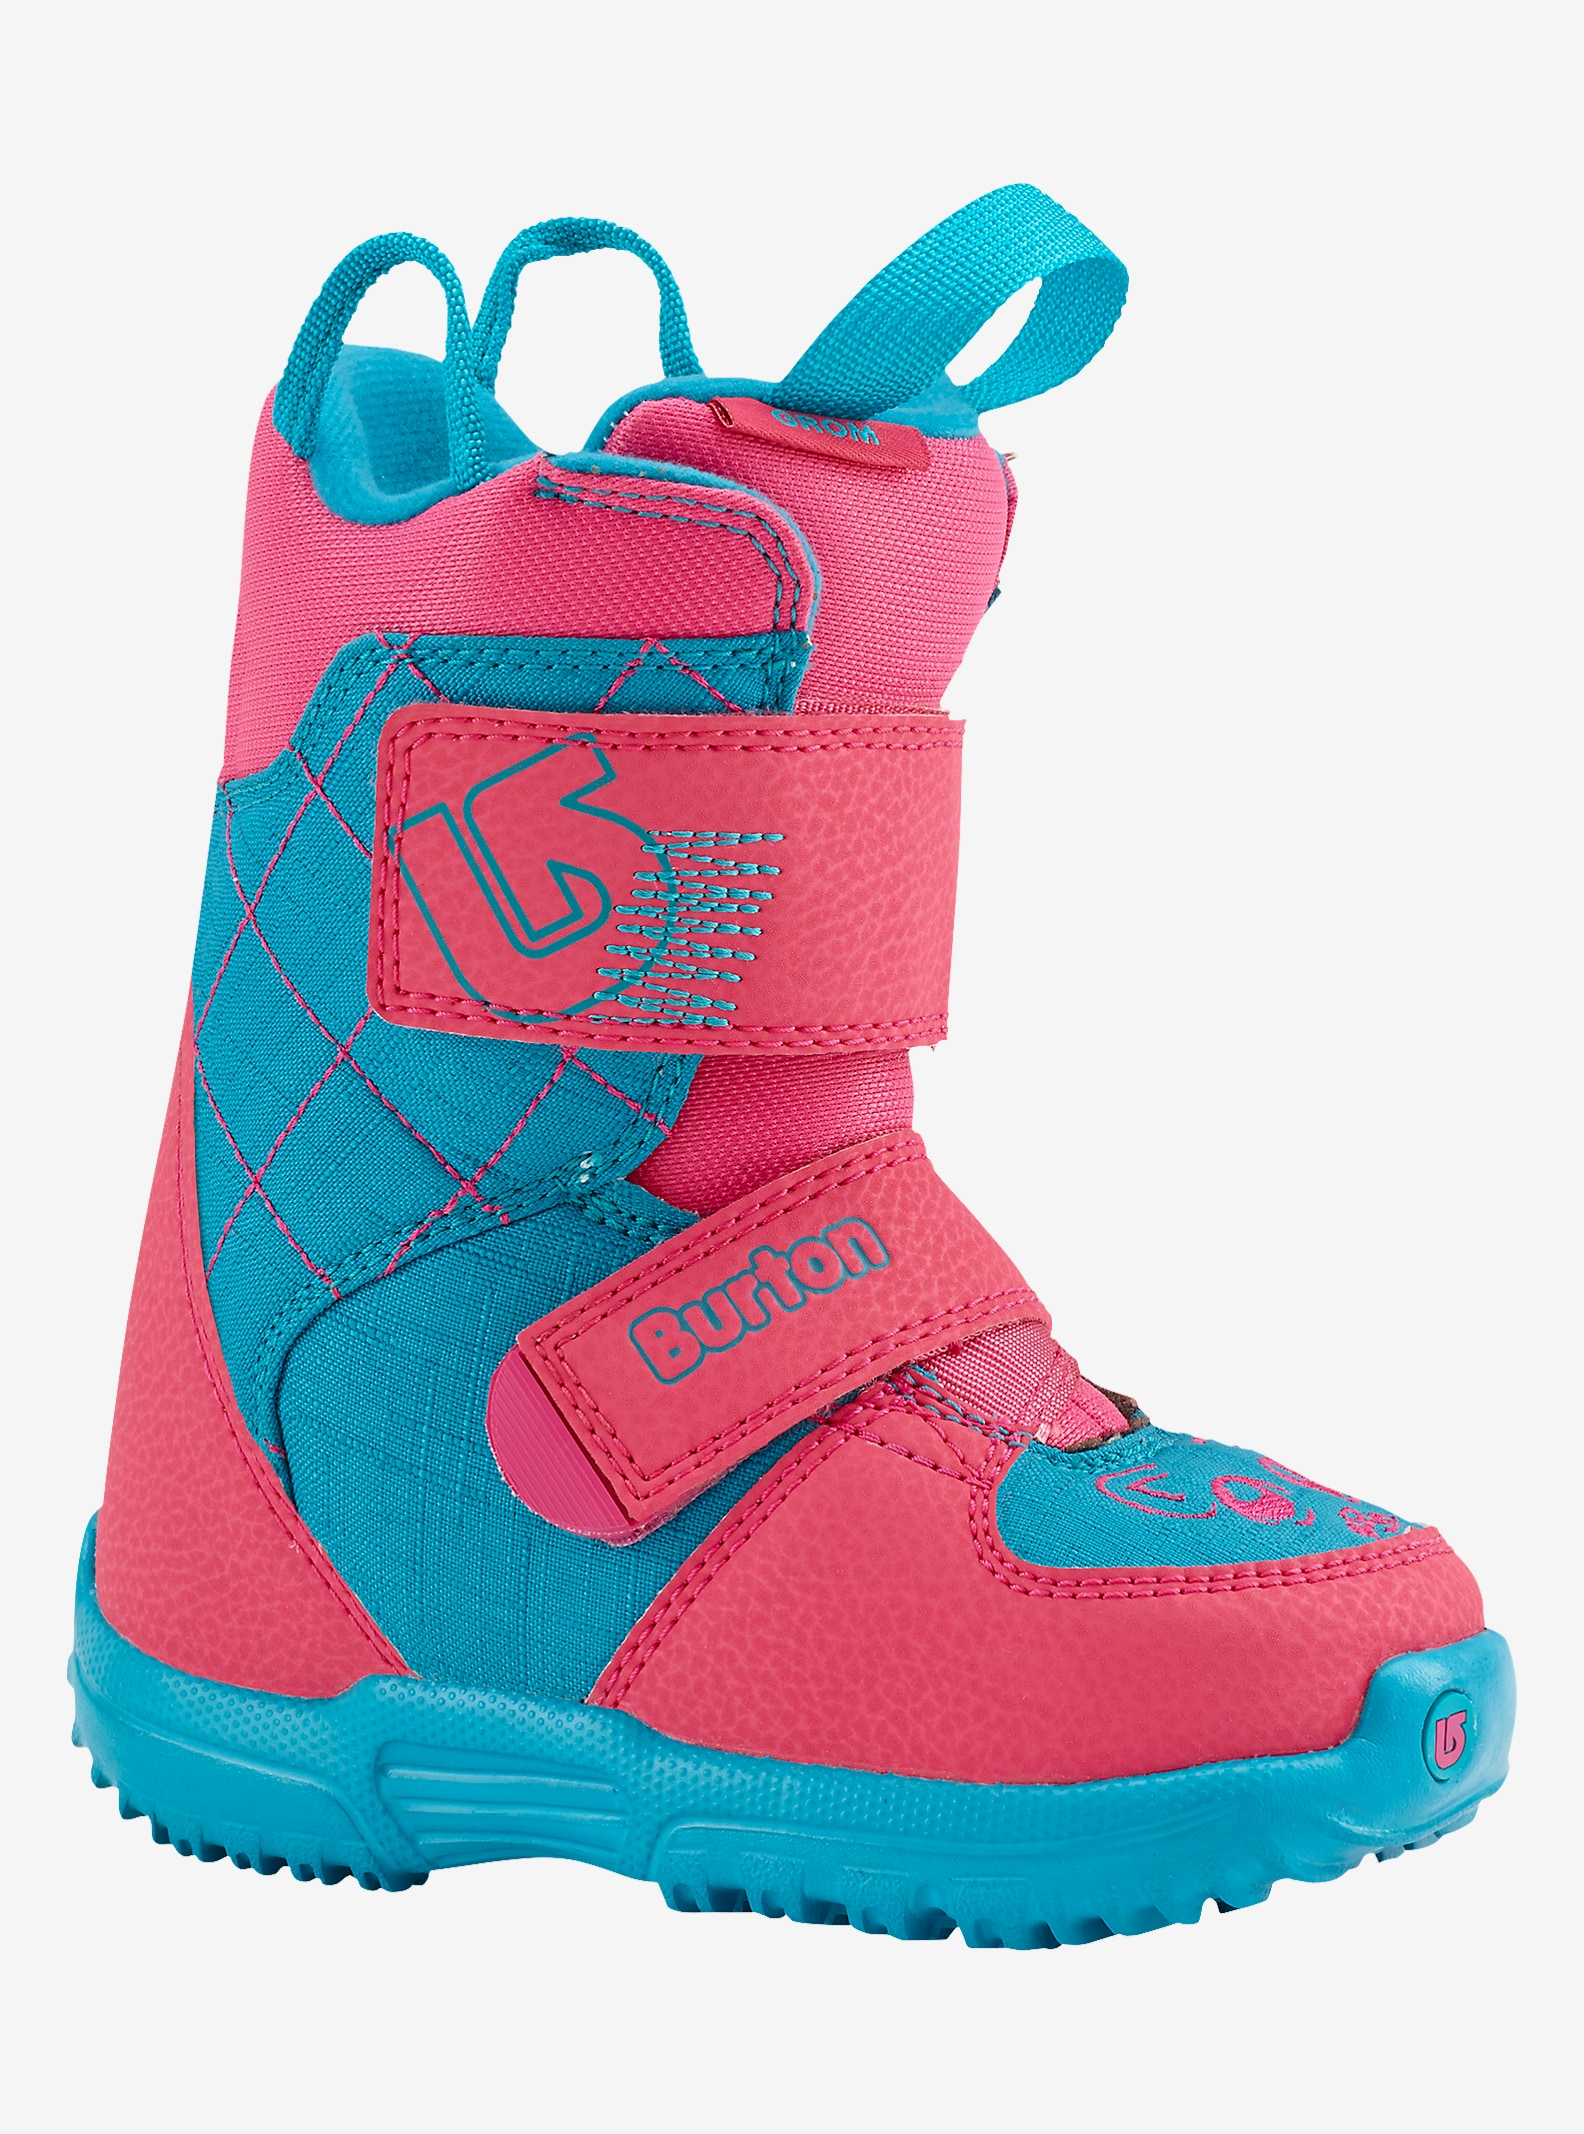 Burton Mini-Grom Snowboard Boot shown in Pink / Teal